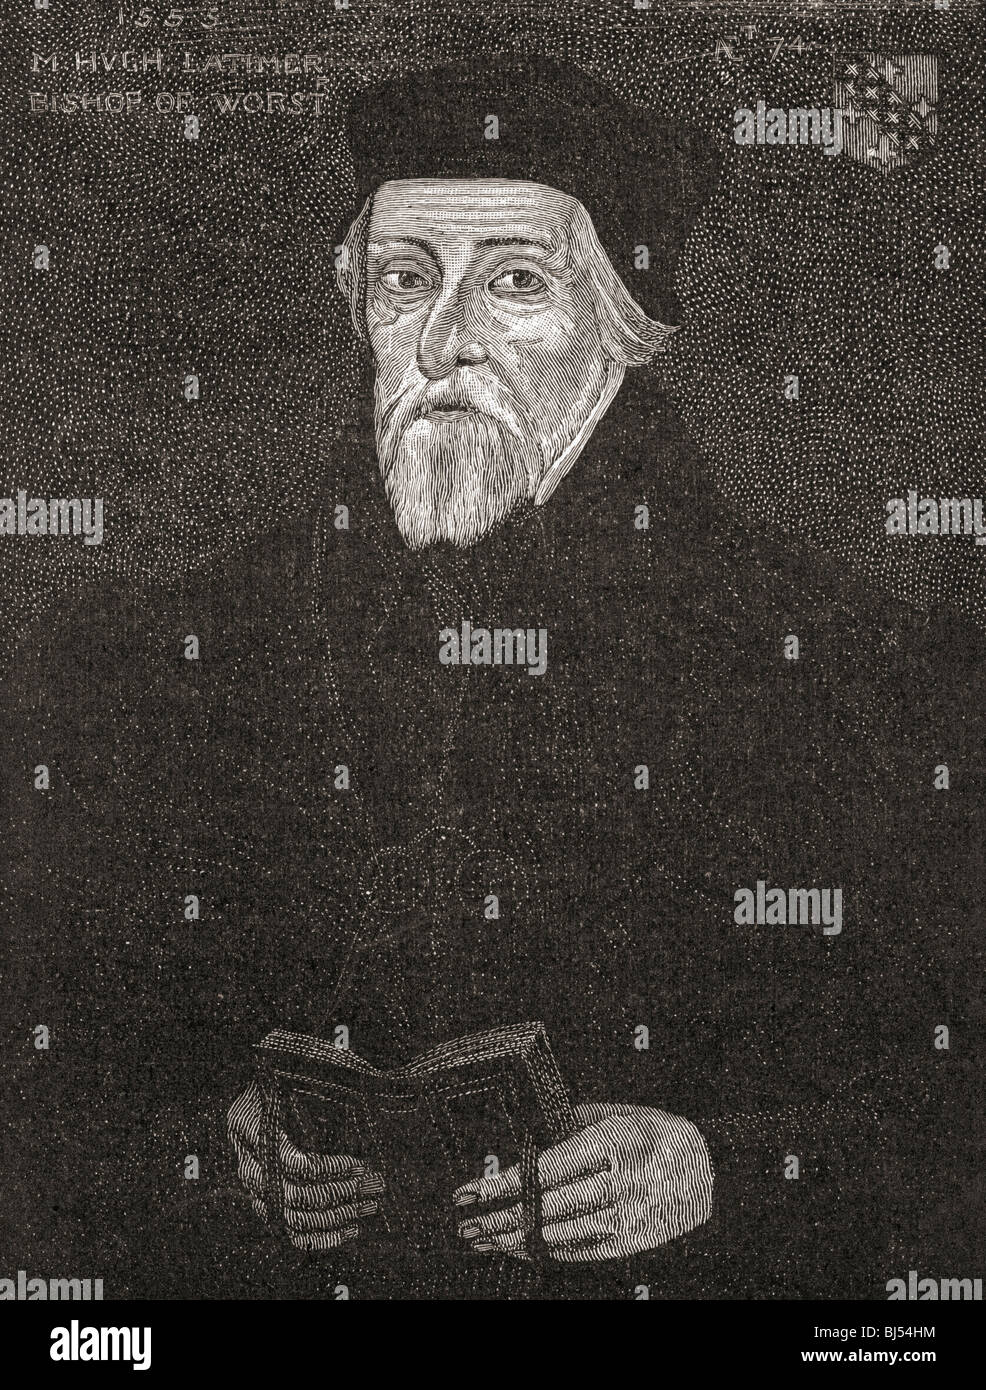 Hugh Latimer, c.1487 to 1555. Anglican bishop and martyr - Stock Image